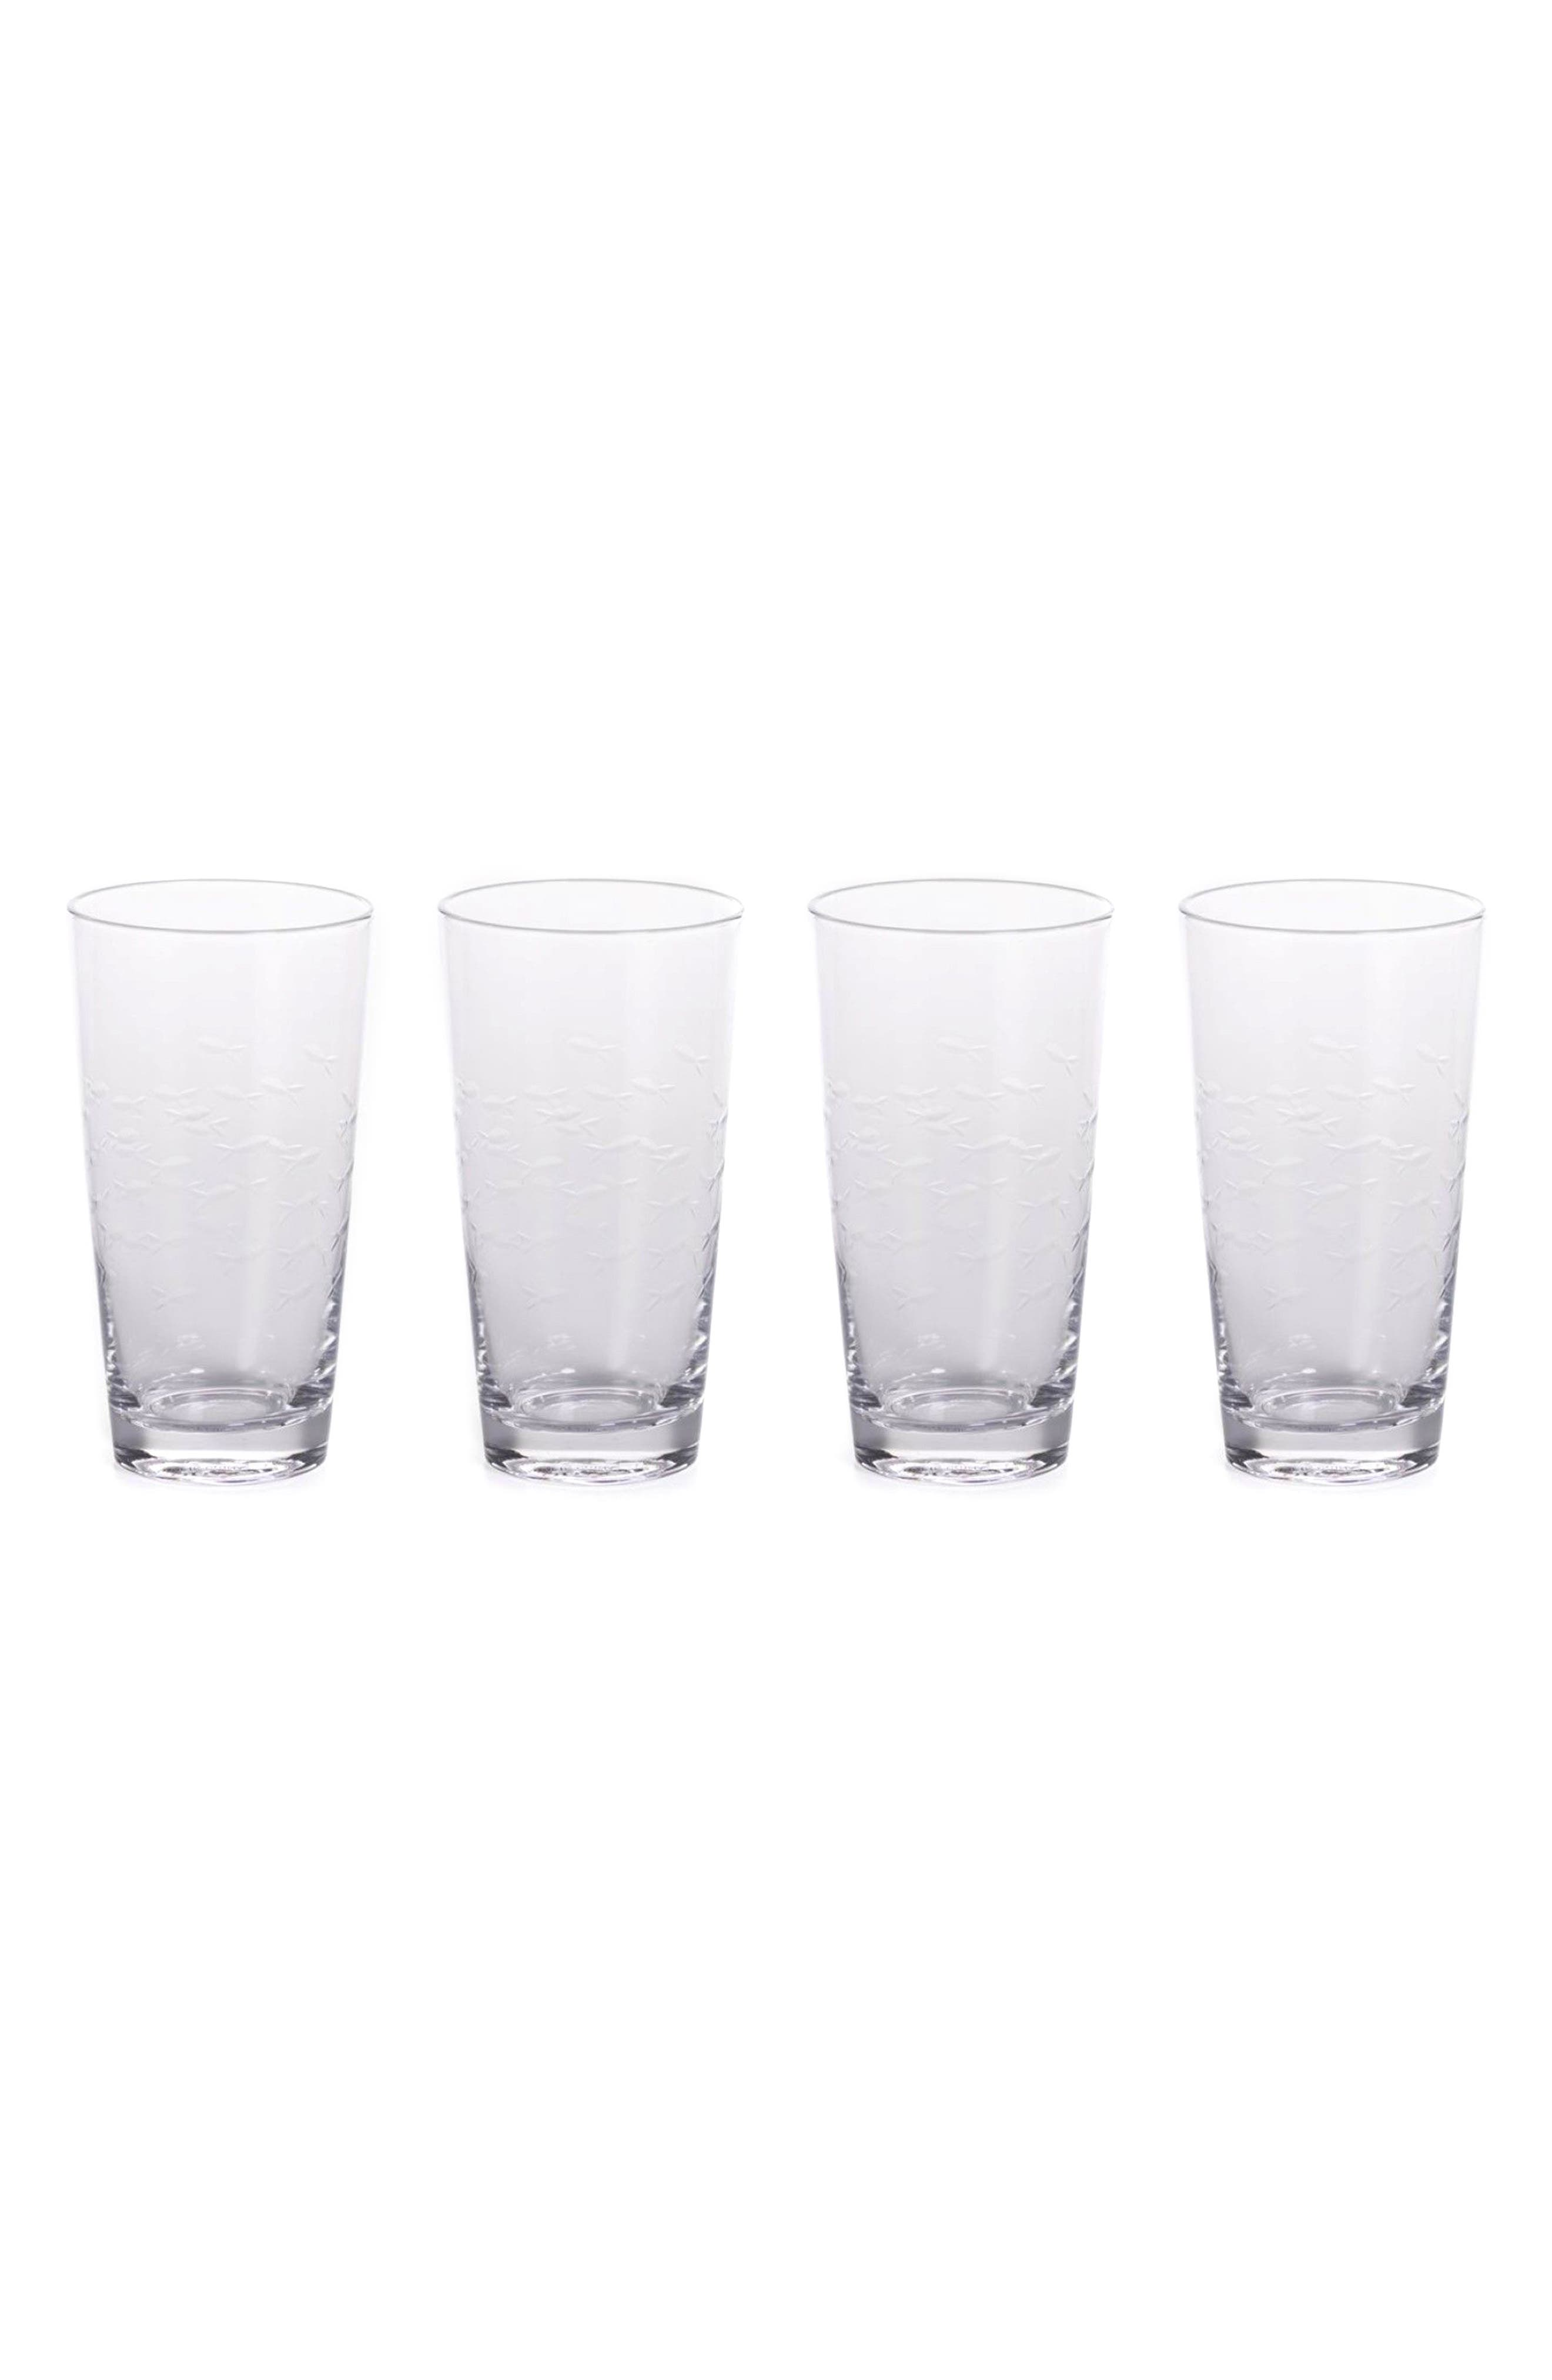 Keely Set of 4 Highball Glasses,                             Main thumbnail 1, color,                             Clear